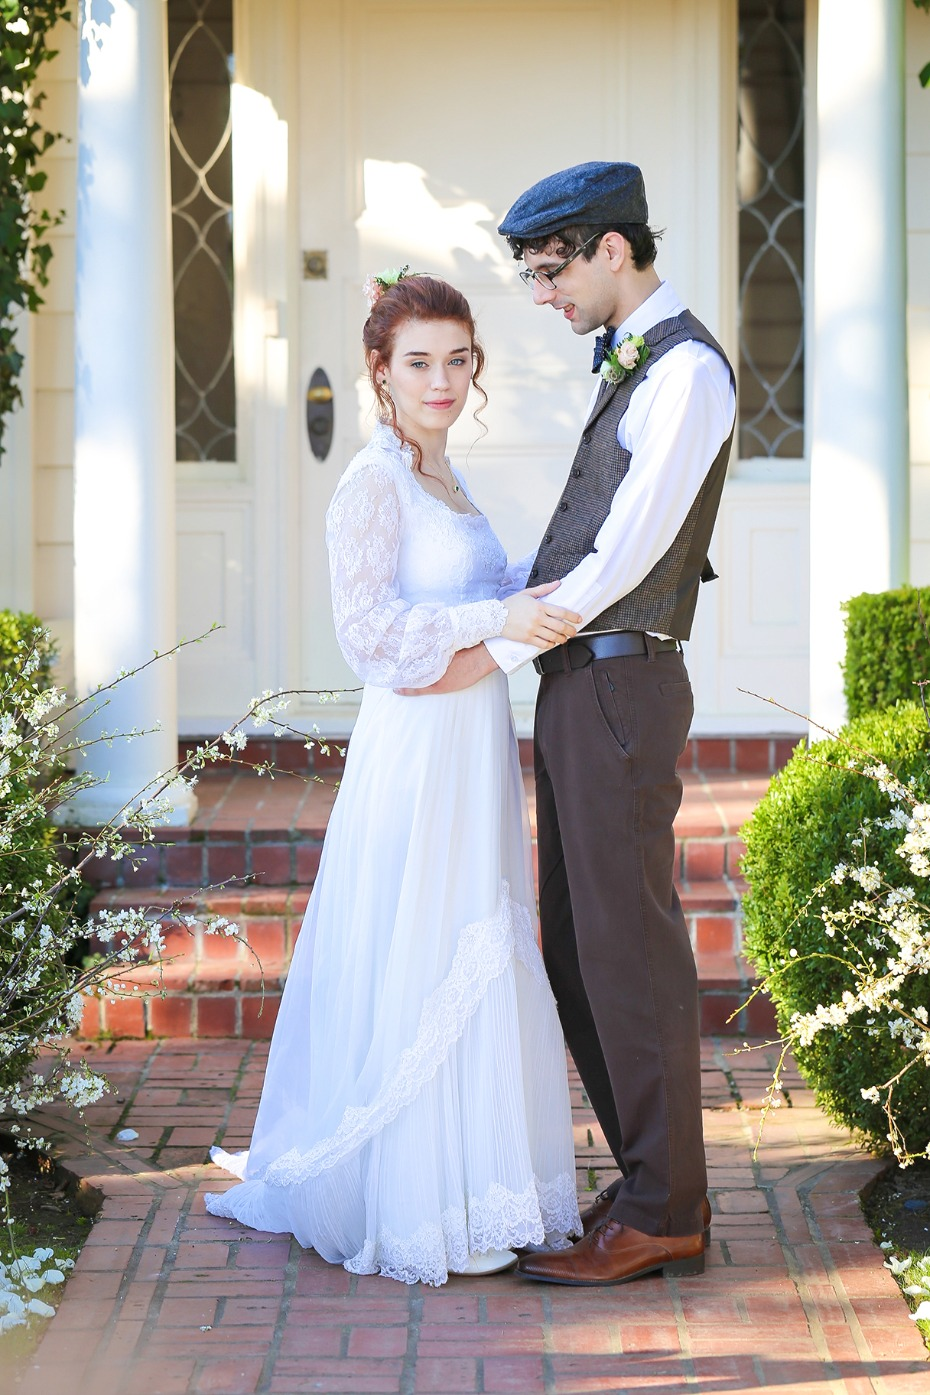 Vintage wedding ideas inspired by Anne of Green Gables